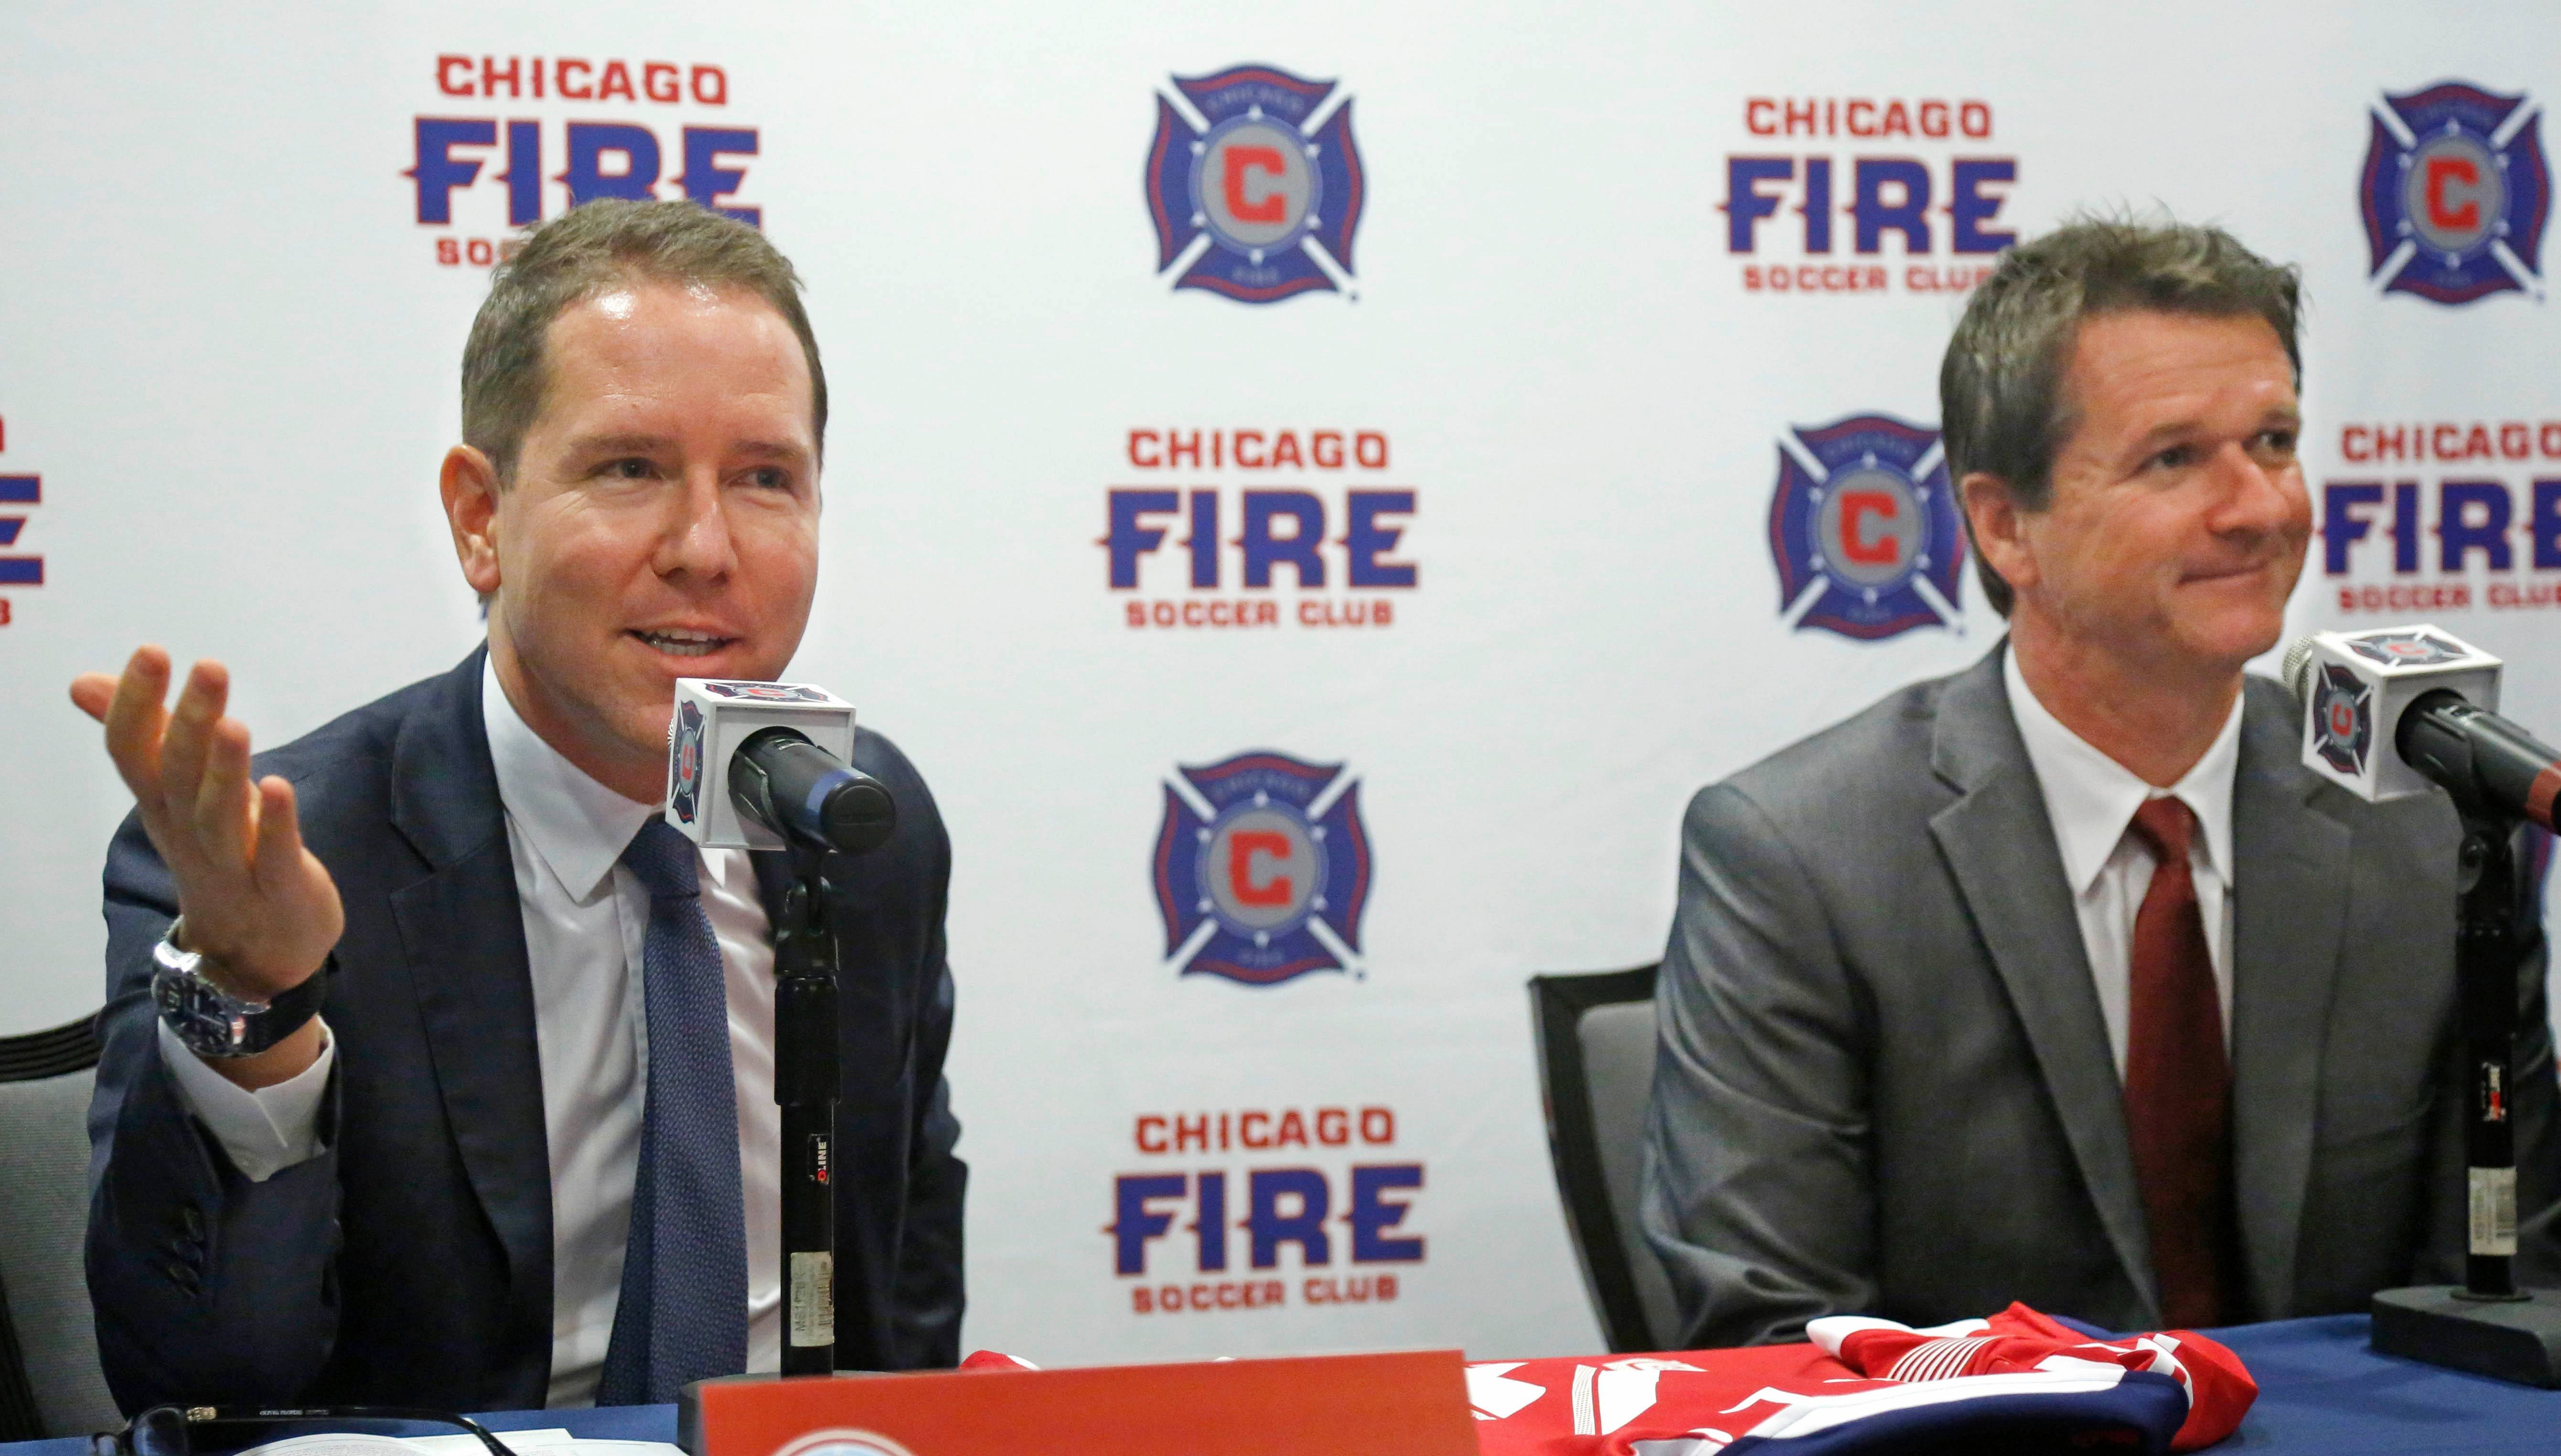 While Chicago Fire owner Andrew Hauptman, left, has given Frank Yallop, the team's head coach and director of soccer, some leeway to add more talent, there aren't any player personnel moves in the pipeline right now.